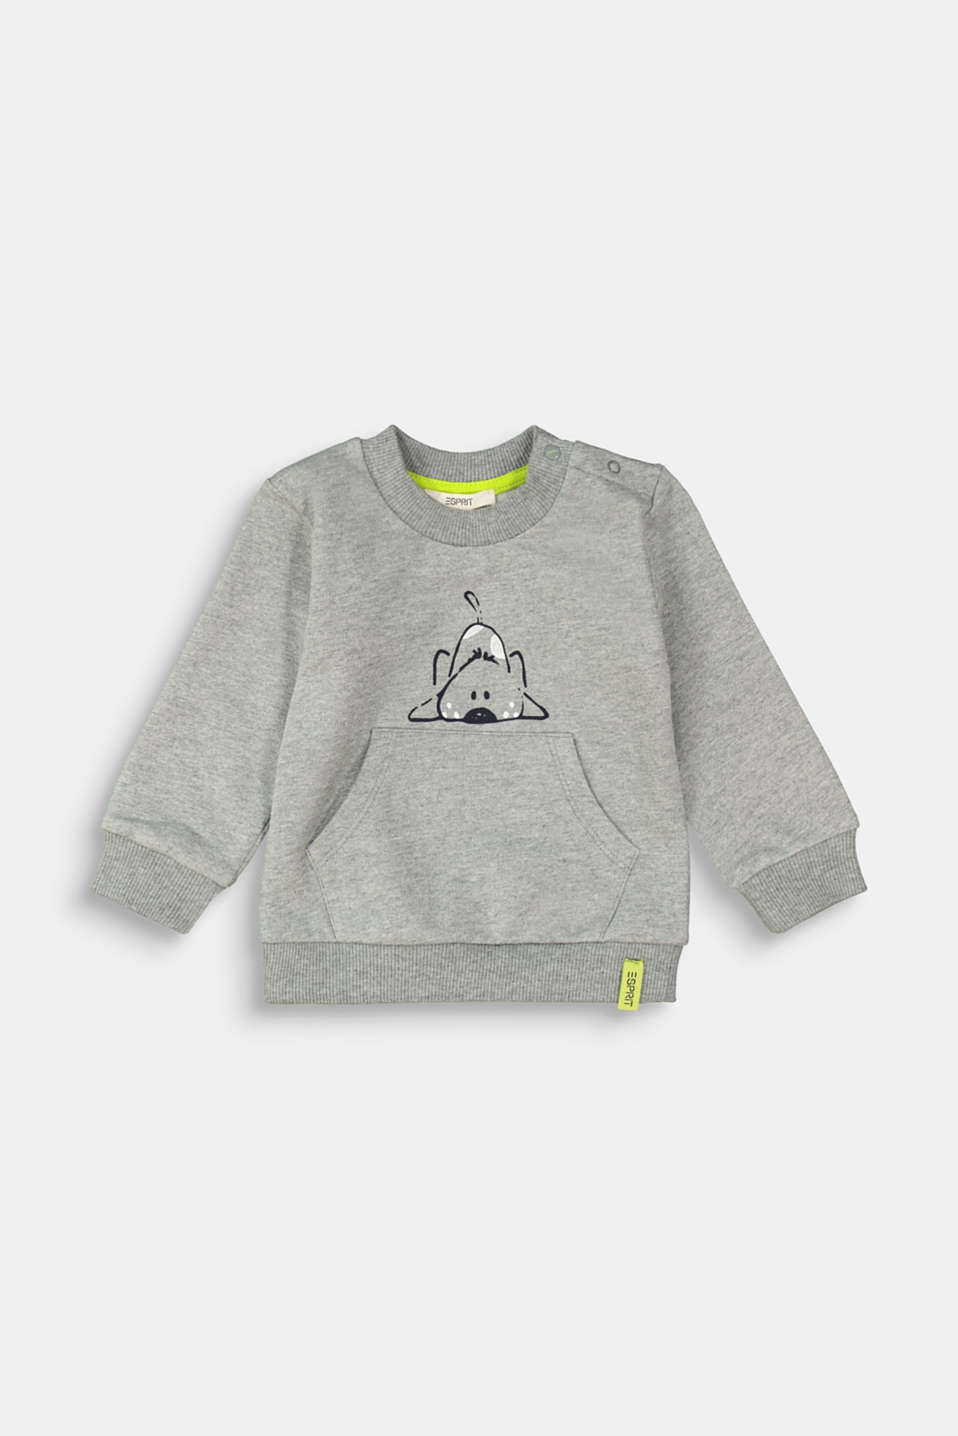 Esprit - Sweat-shirt à motif animal, 100 % coton biologique